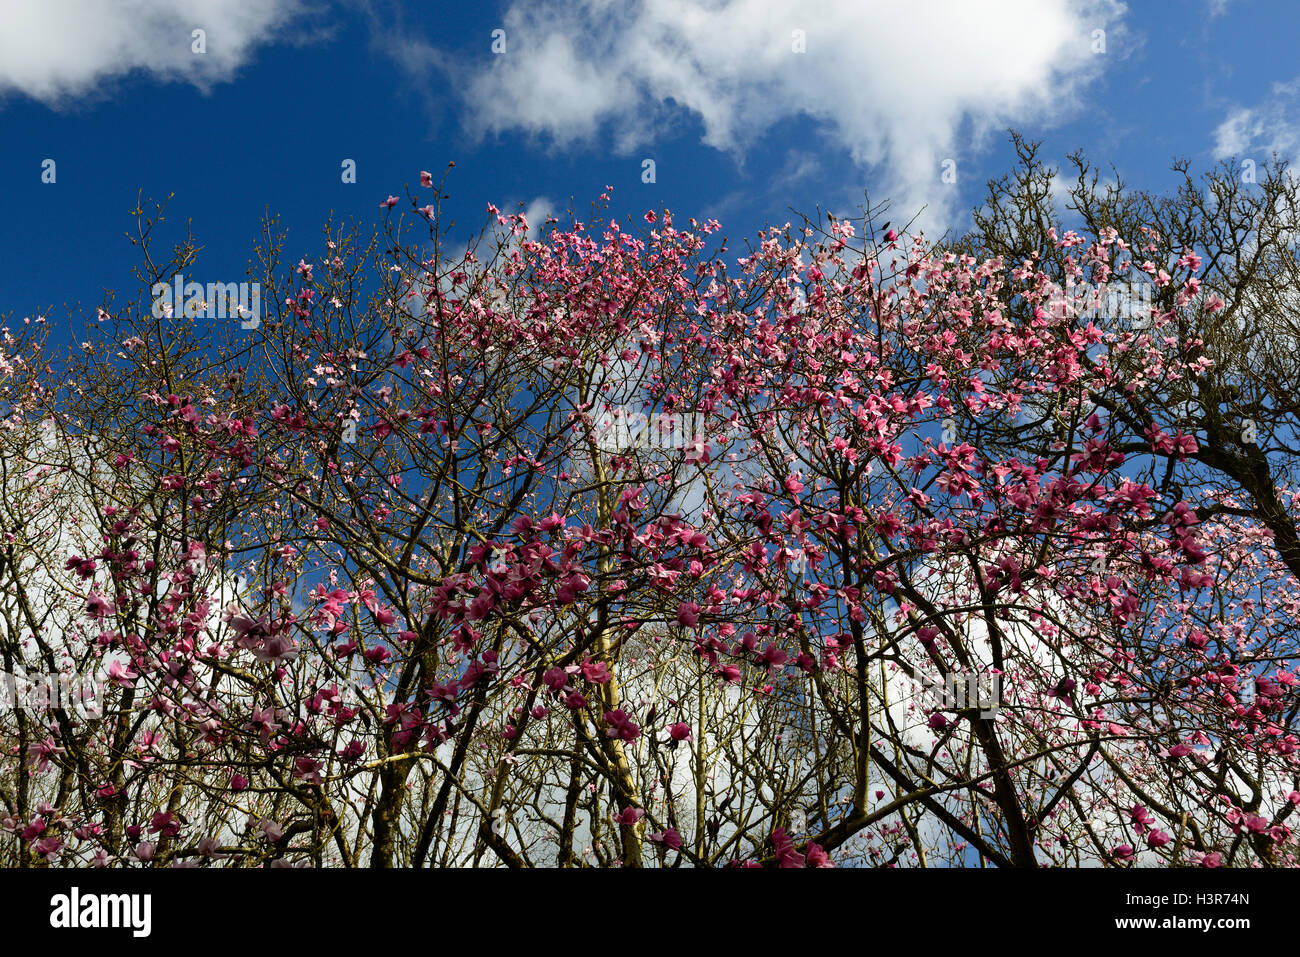 Magnolia campbellii pink flowers flowering trees tree canopy canopies Mount Congreve Gardens Waterford Ireland RM Stock Photo